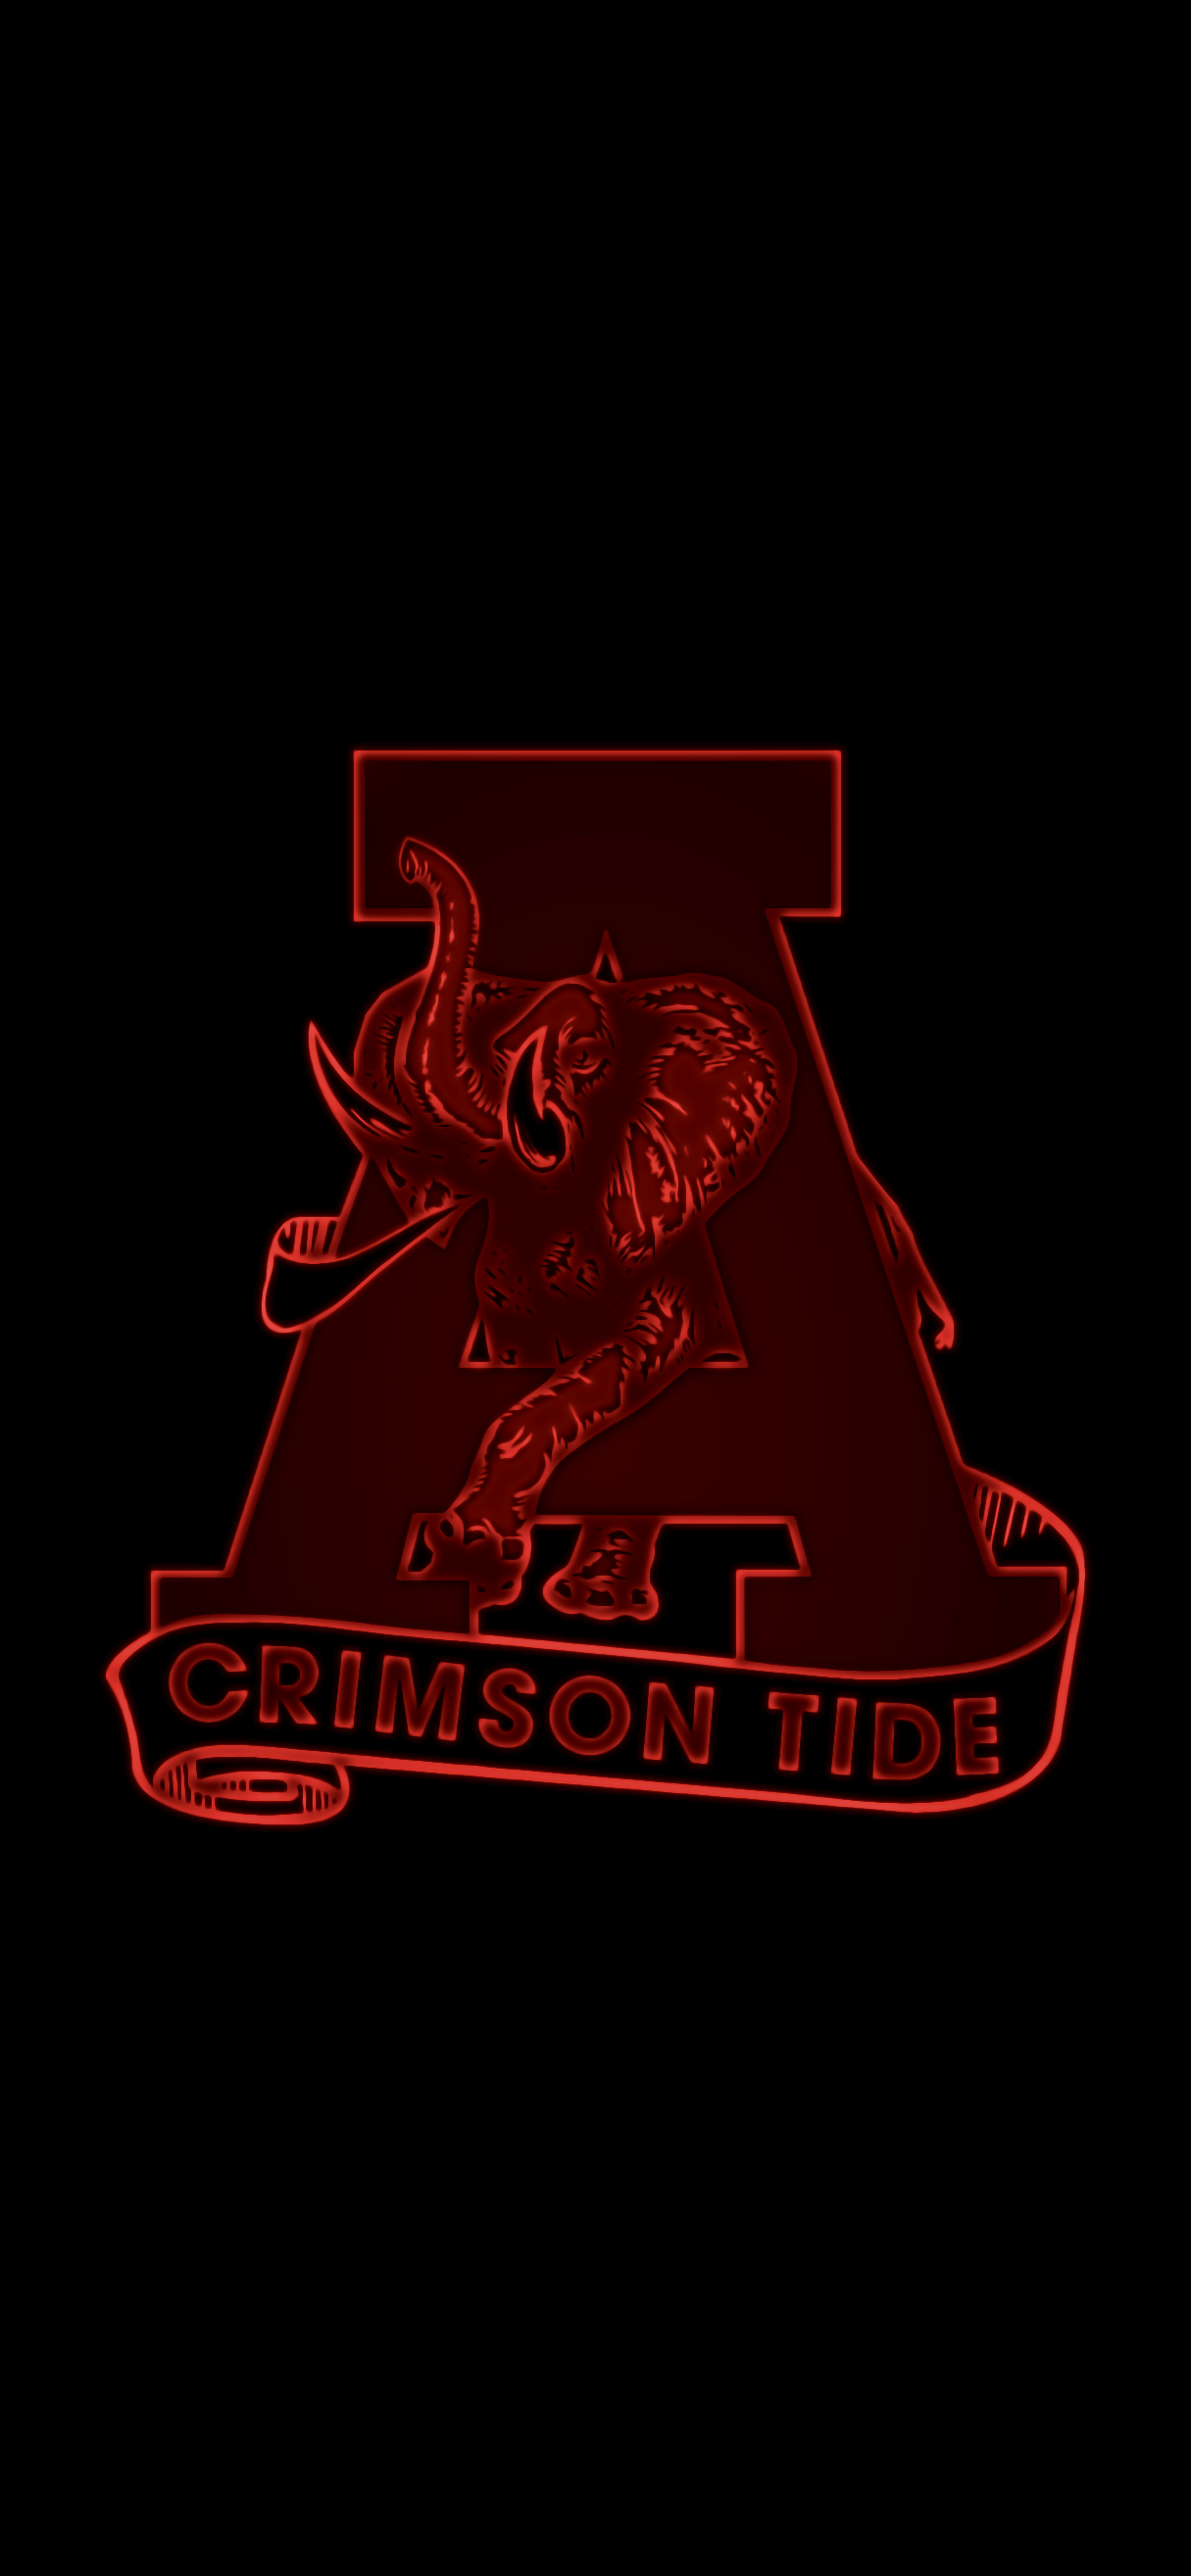 Alabama Crimson Tide Football Wallpaper Iphone Android 16